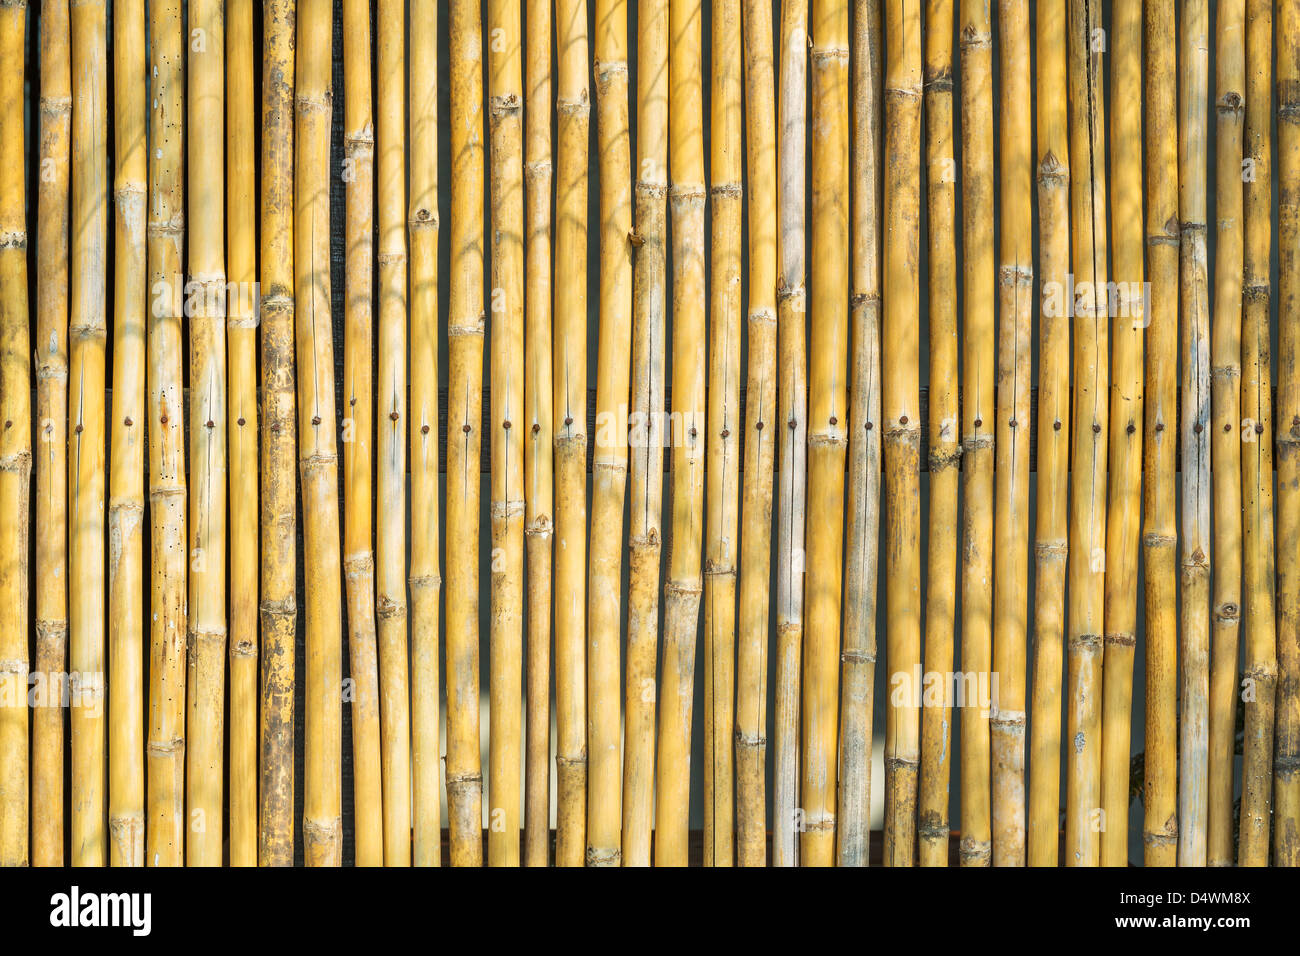 Fence Decoration Stock Photos & Fence Decoration Stock Images - Alamy